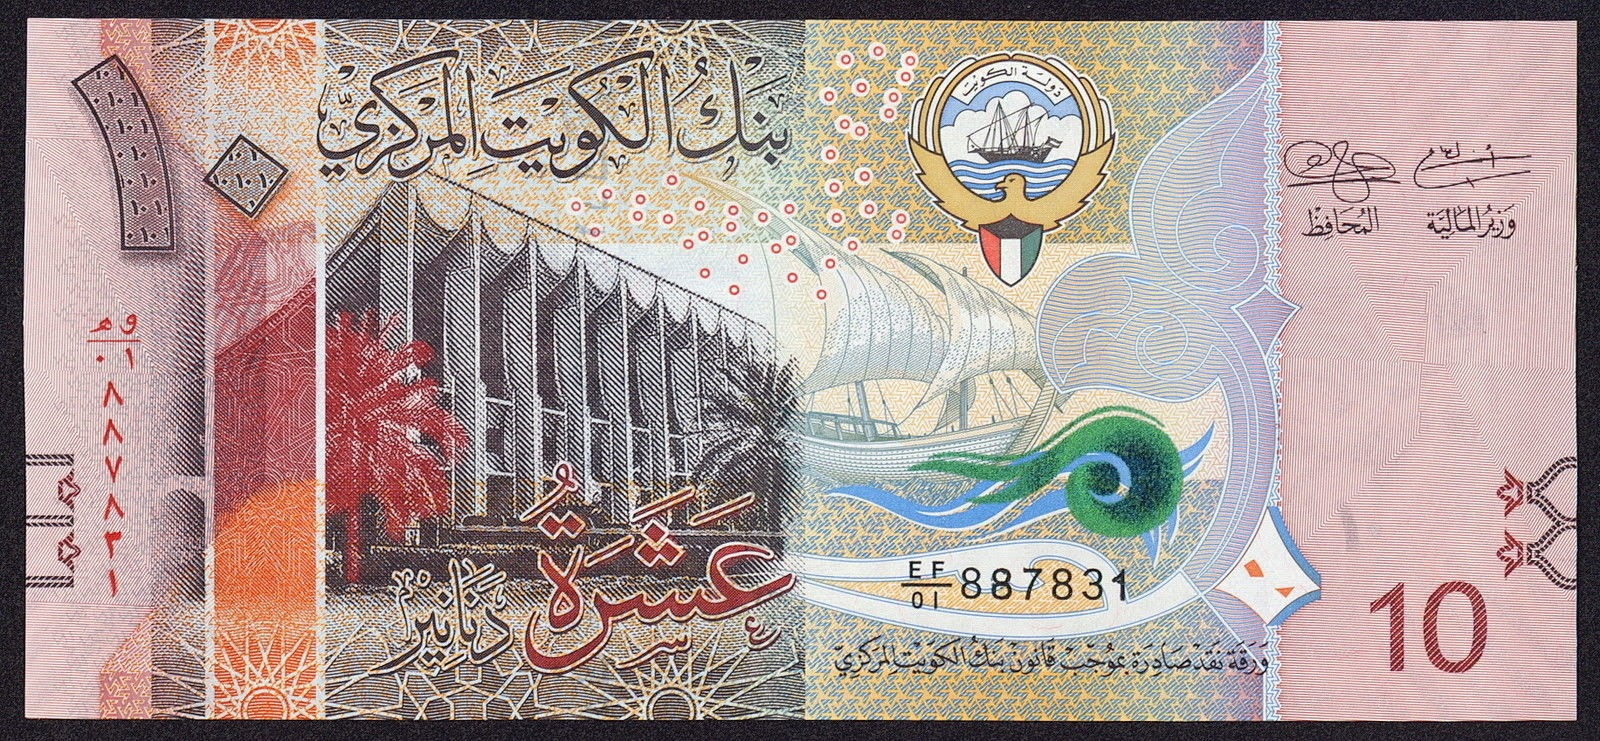 Kuwait New Banknotes 10 Dinars bank note 2014